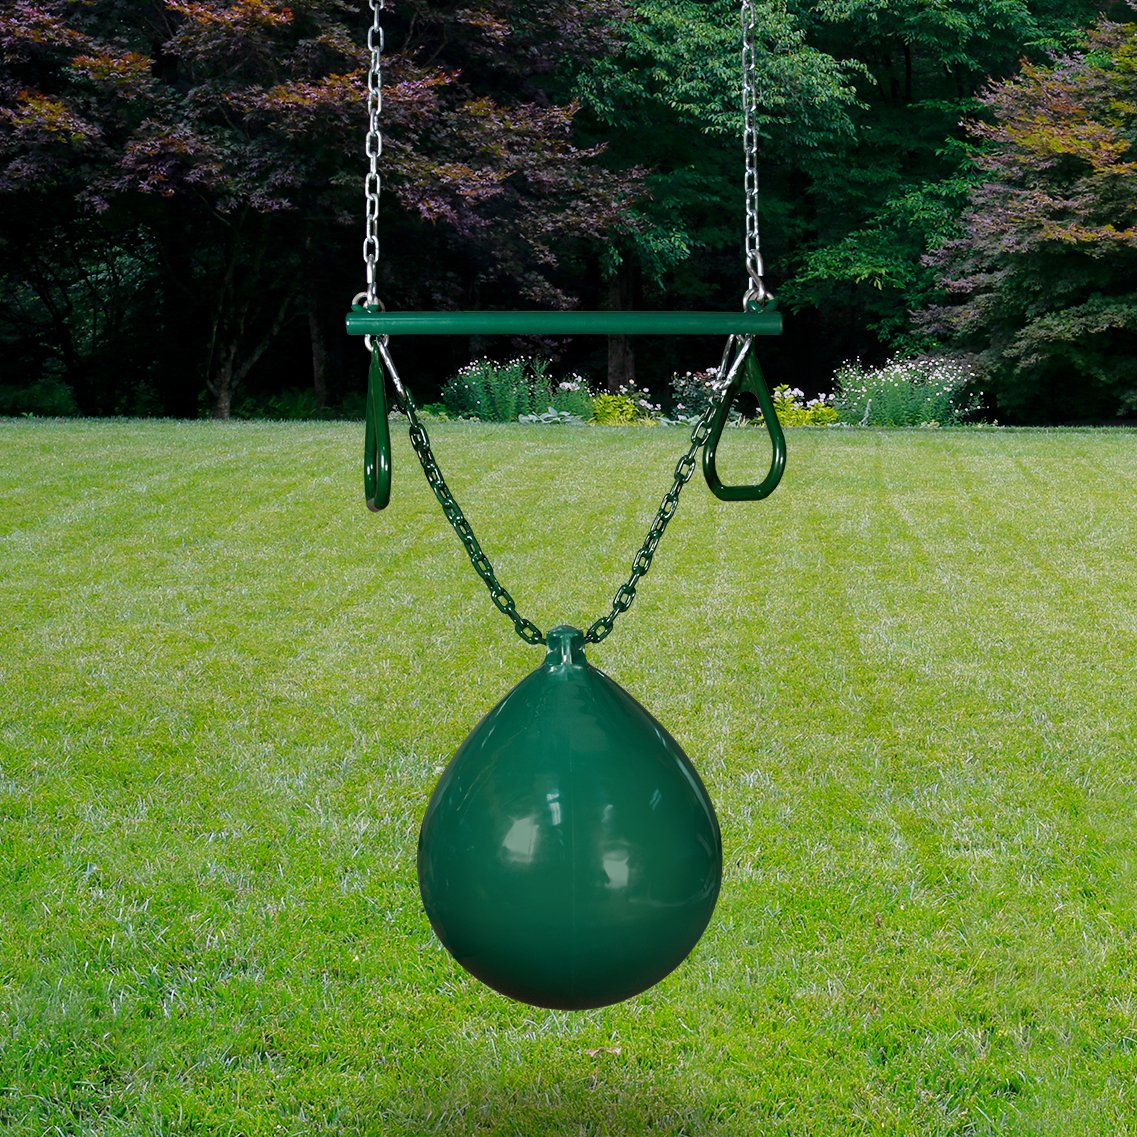 Swing-N-Slide Buoy Ball w/ Trapeze Bar (Green/Green) by Swing-N-Slide (Image #2)